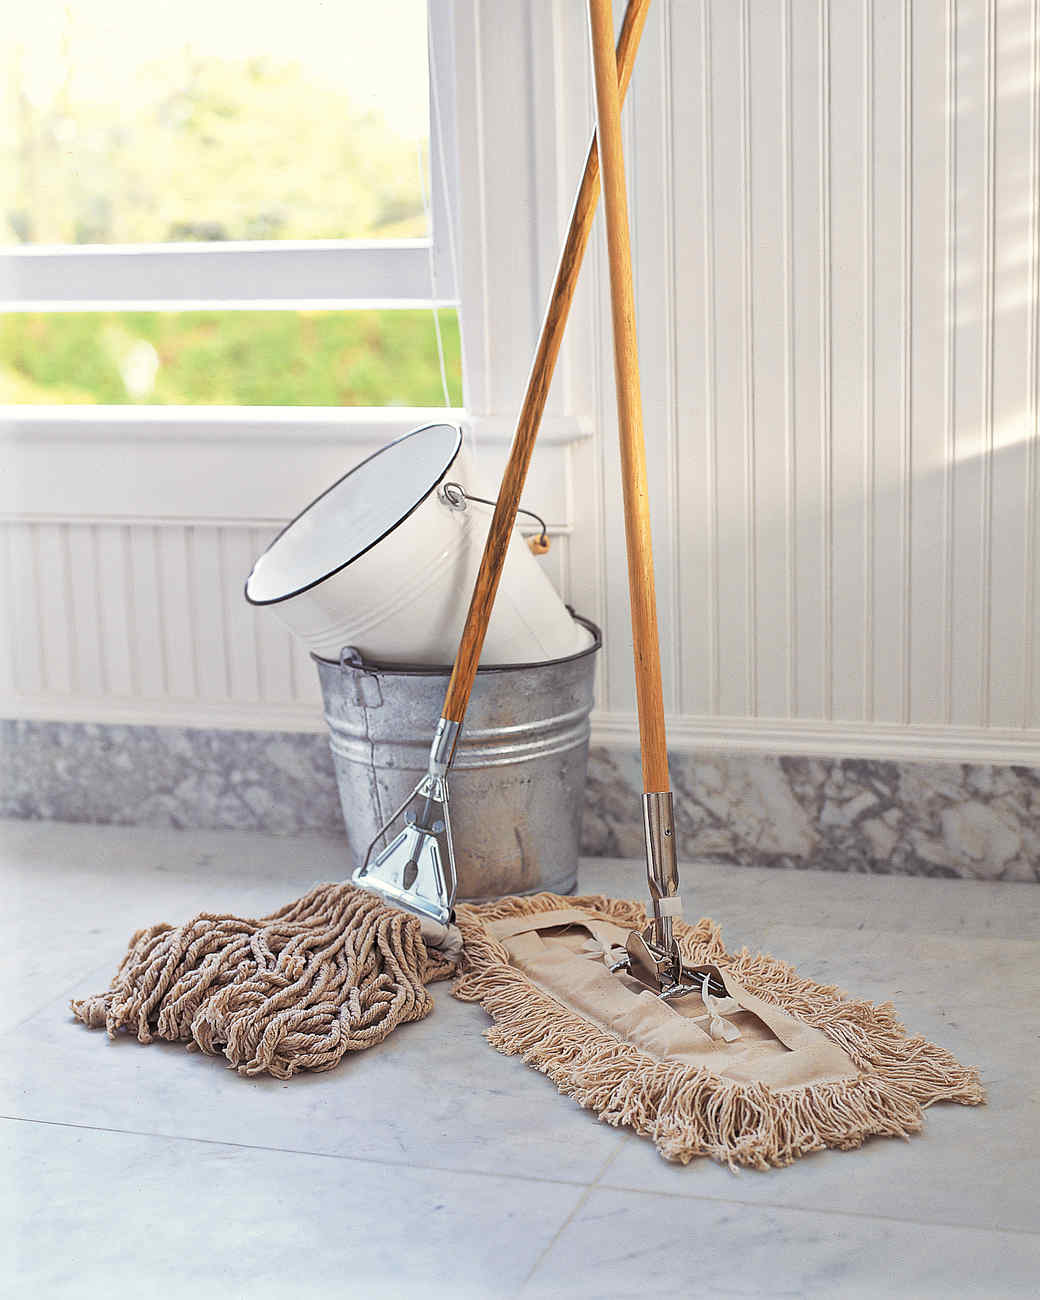 diy carpet cleaner. DIY Carpet Cleaners Diy Cleaner